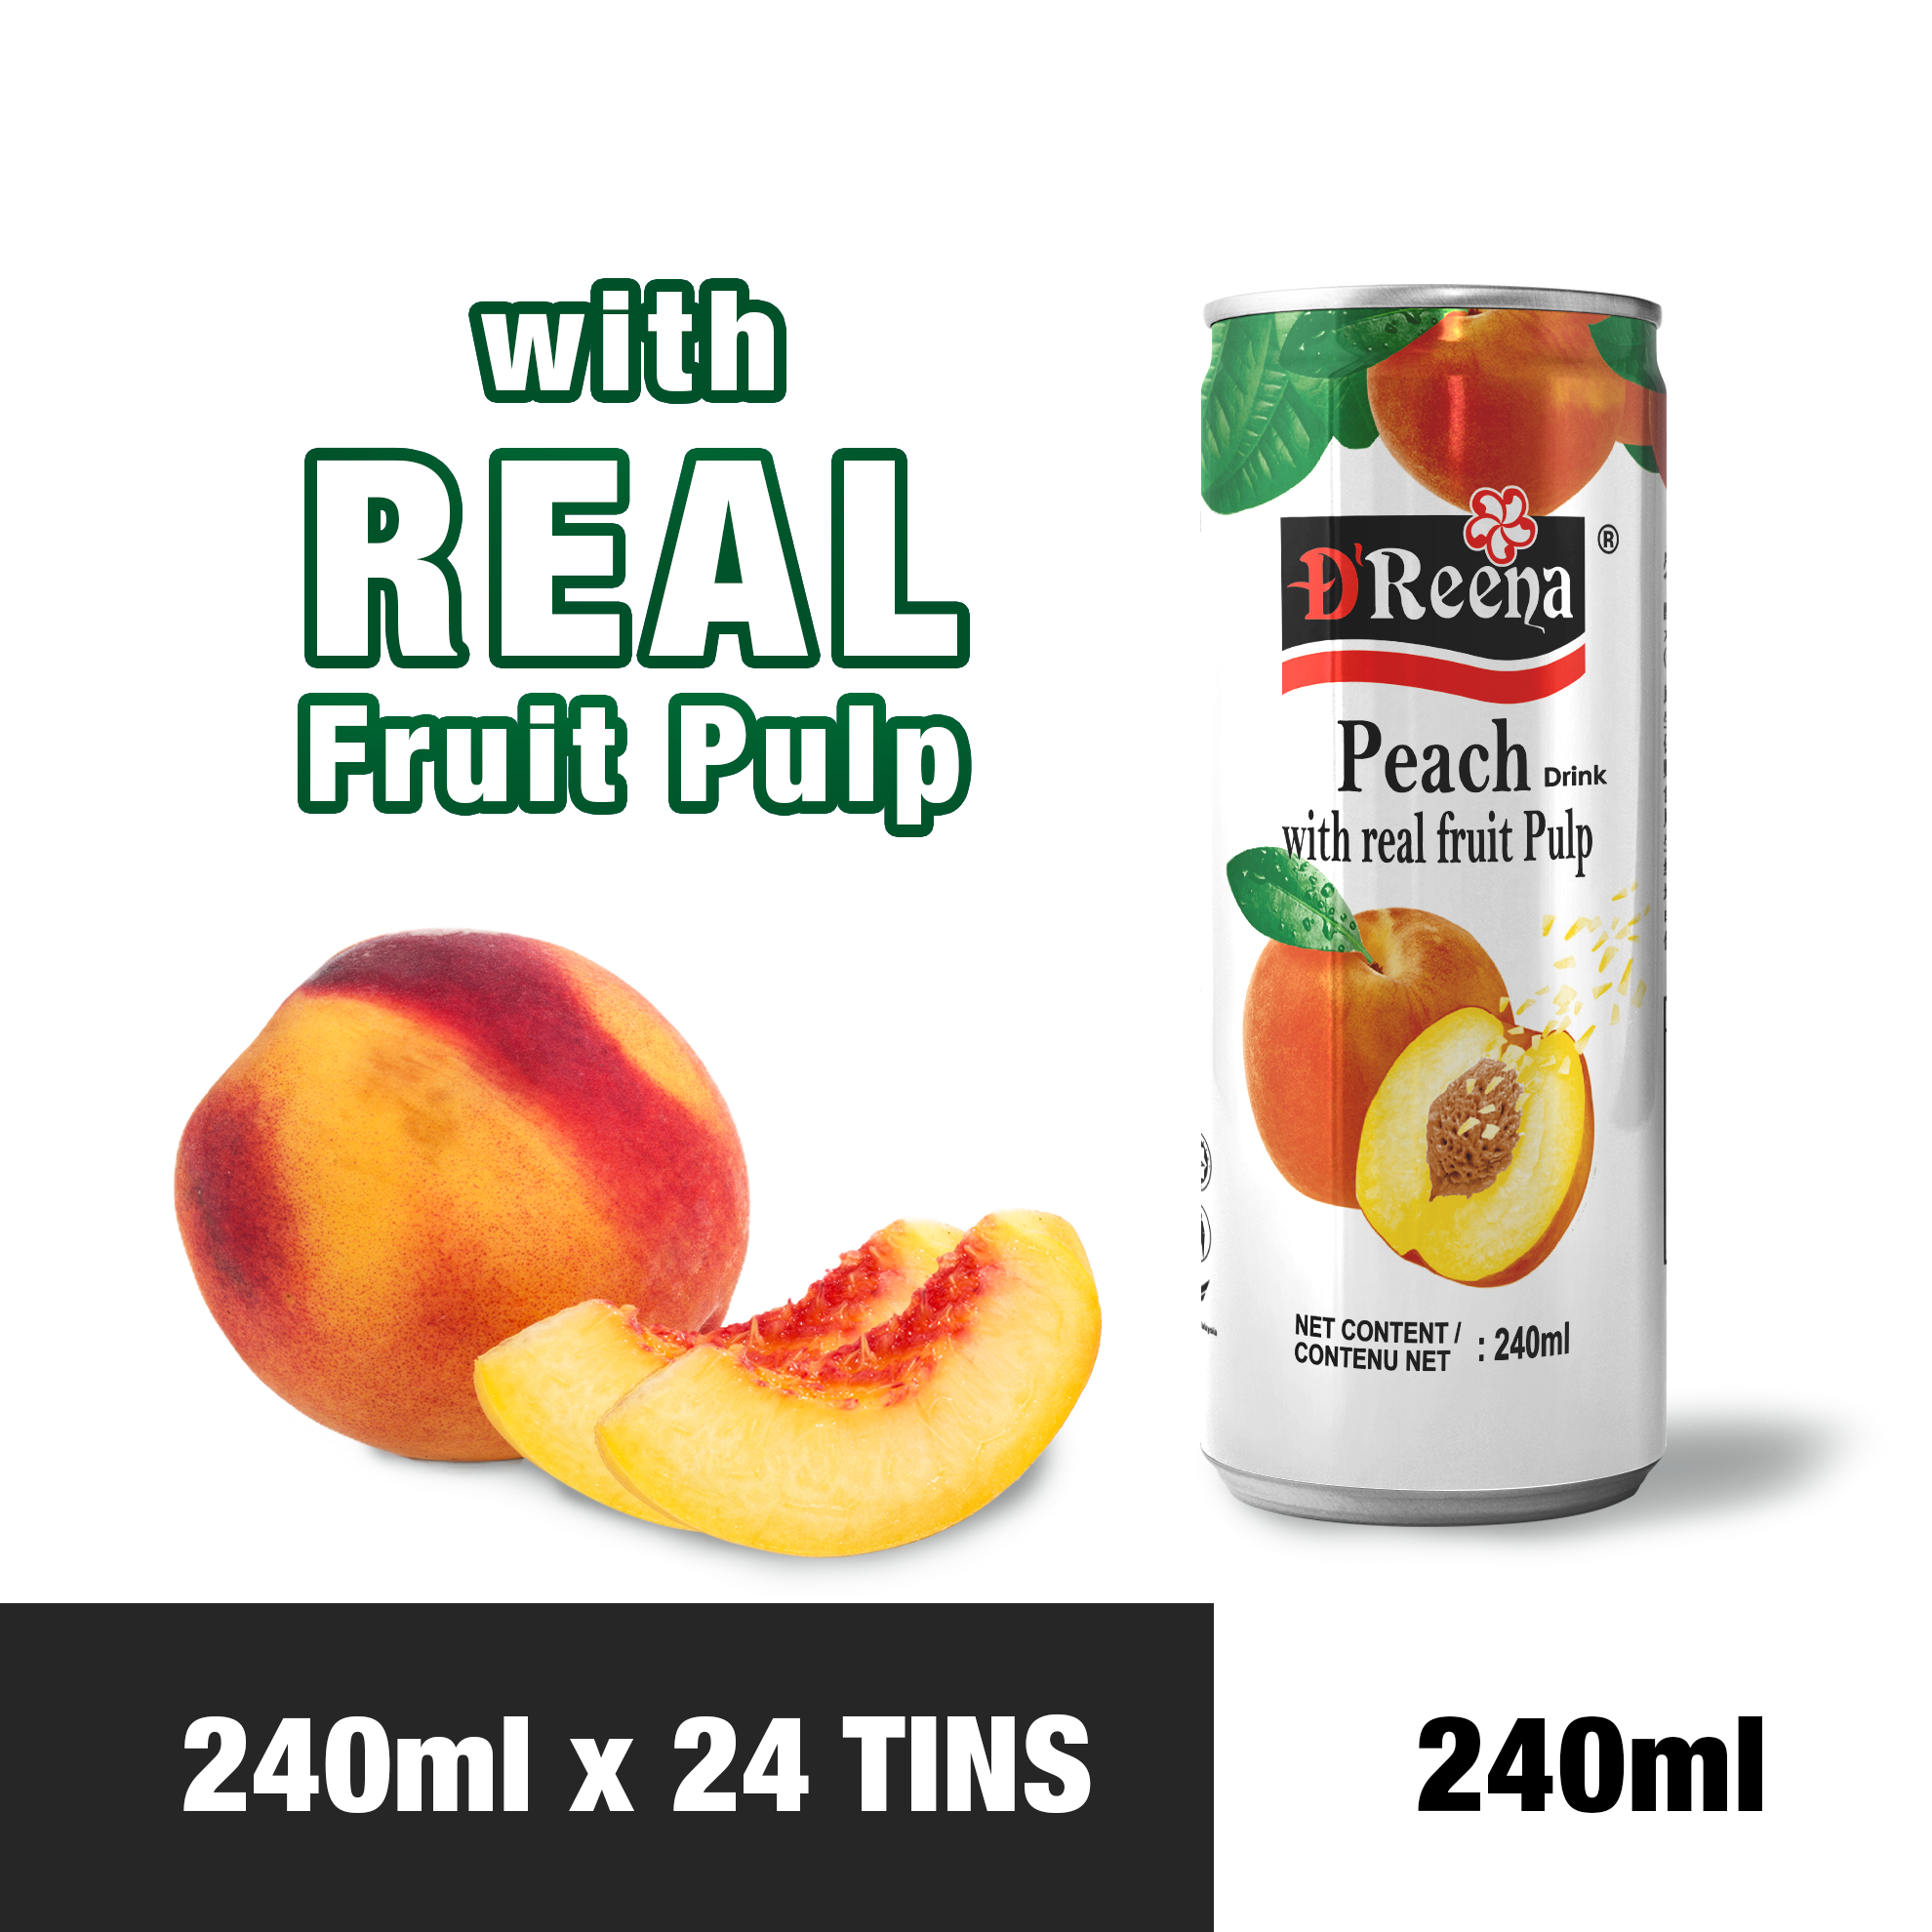 D'Reena Peach Drinks with Real Fruit Pulp (240ml x 24tins)